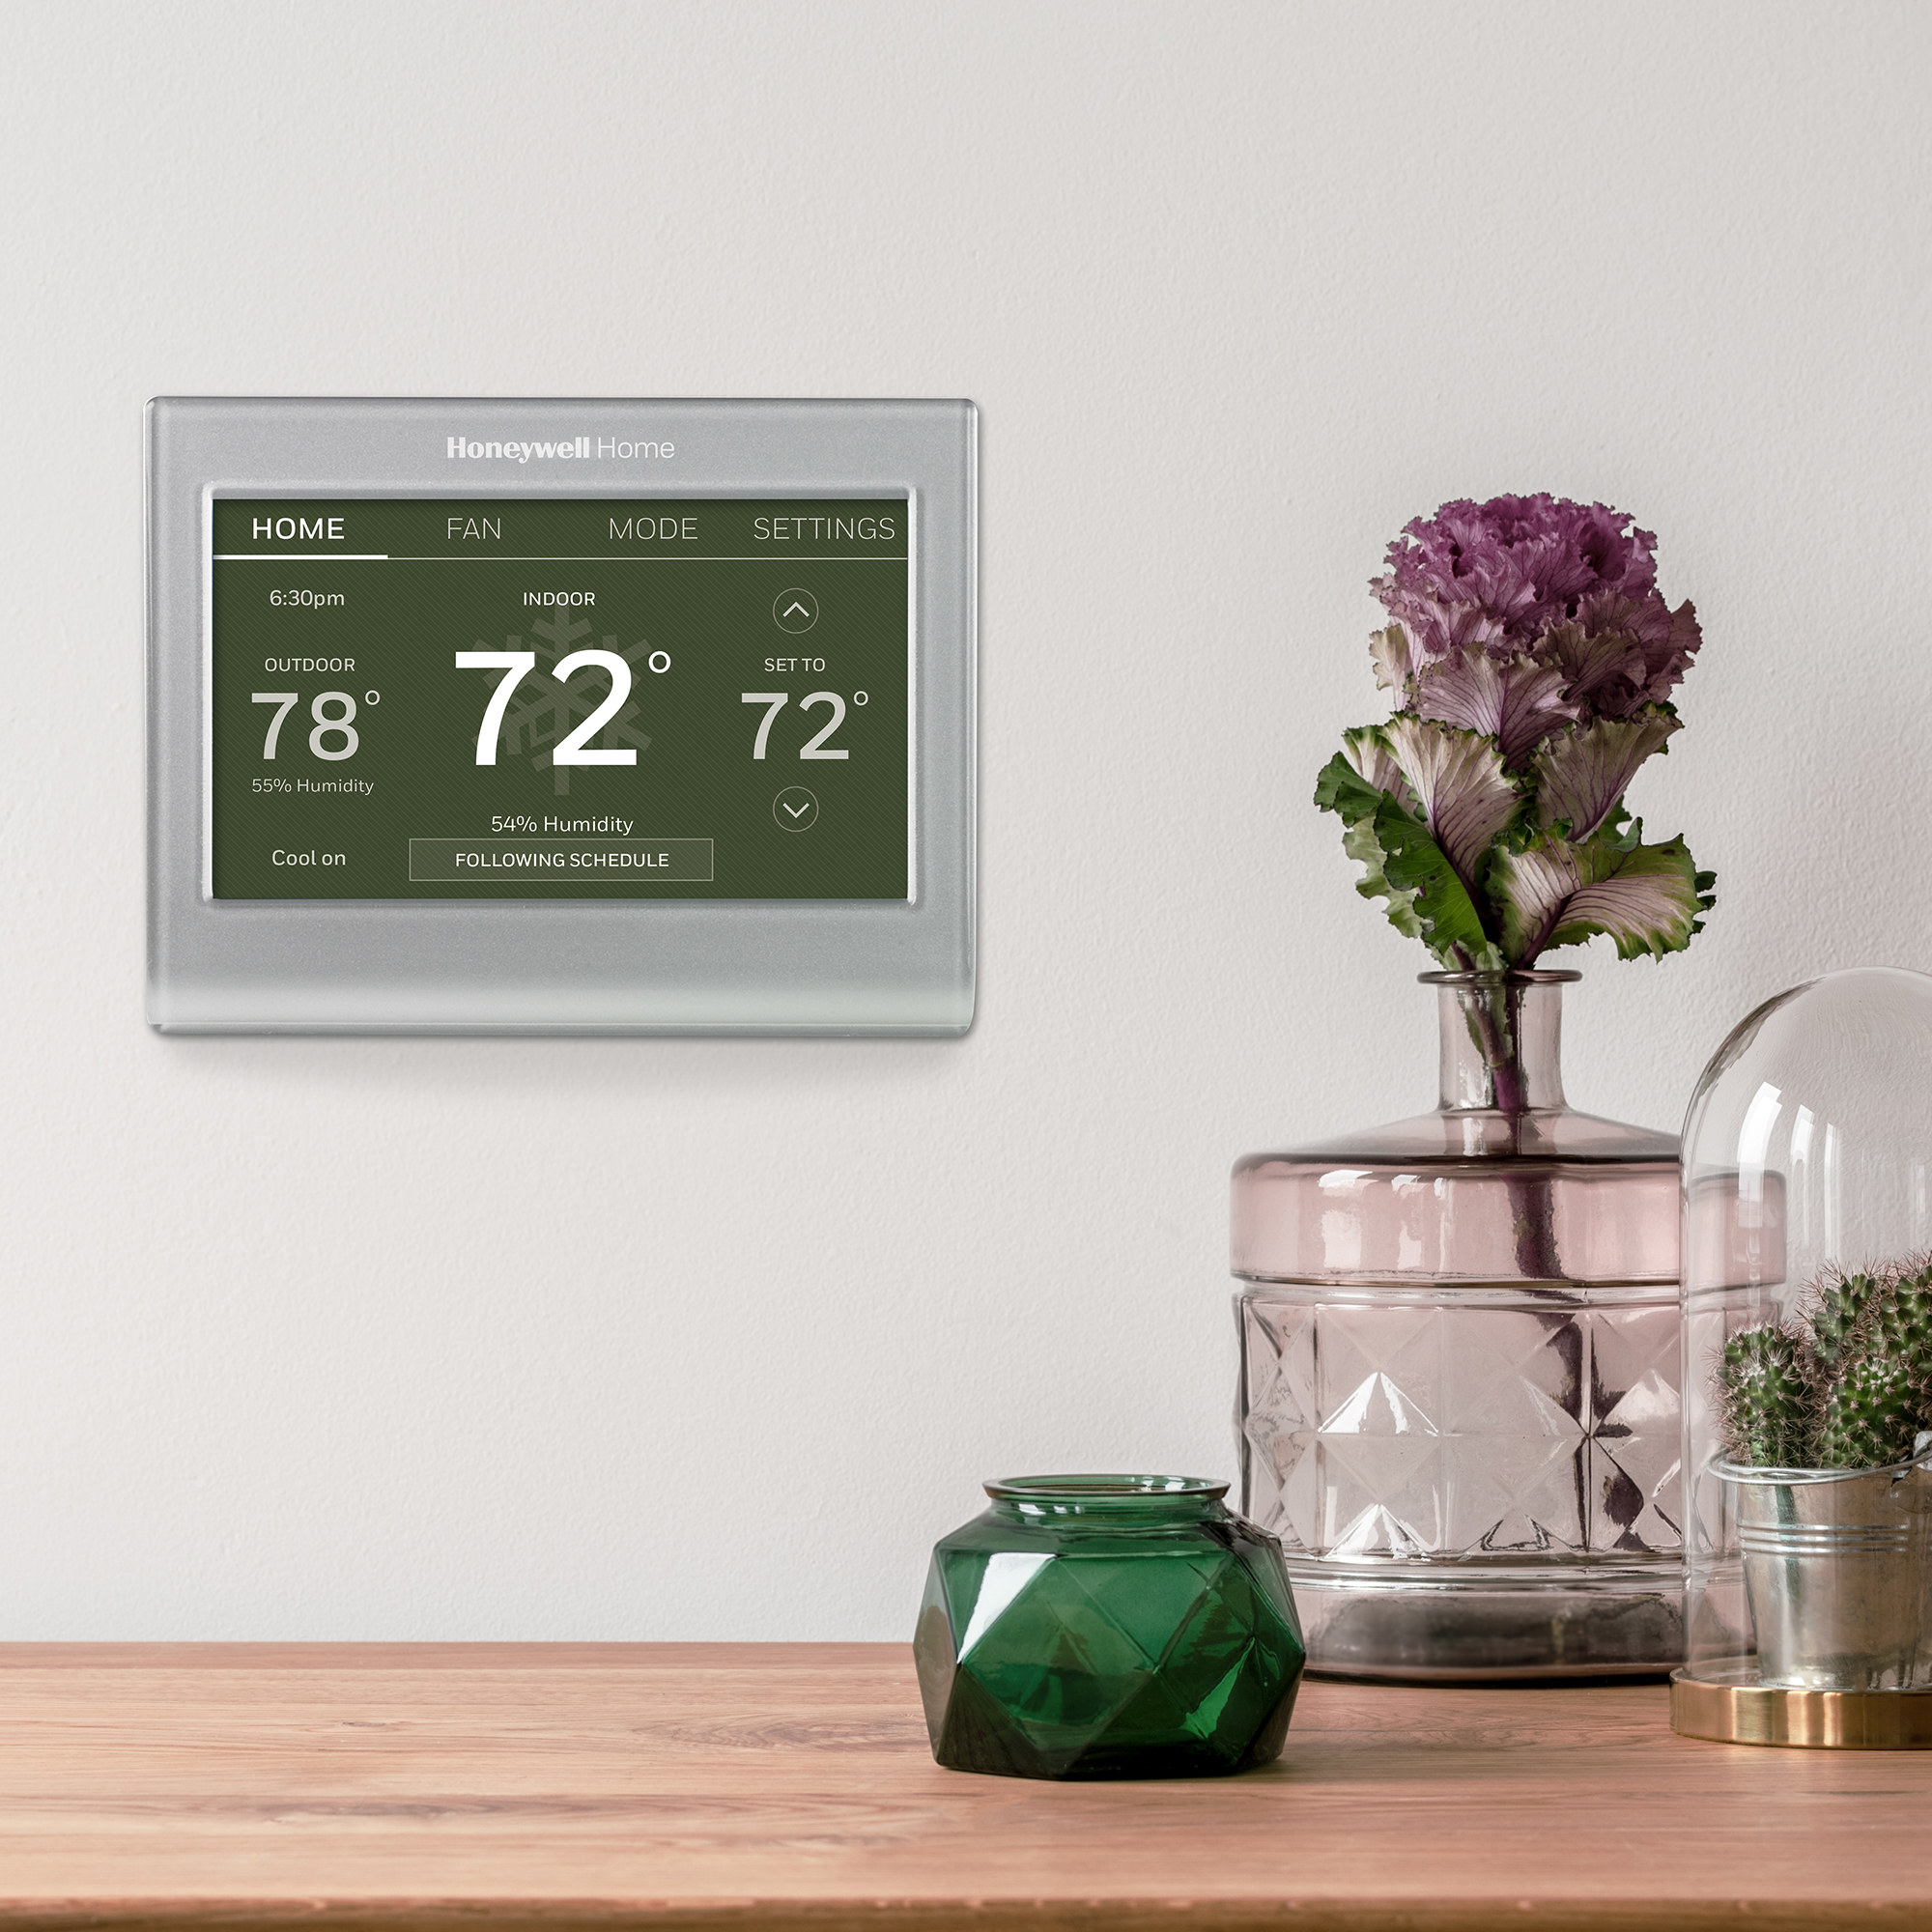 honeywell thermostat on a wall with decorate objects in the foreground